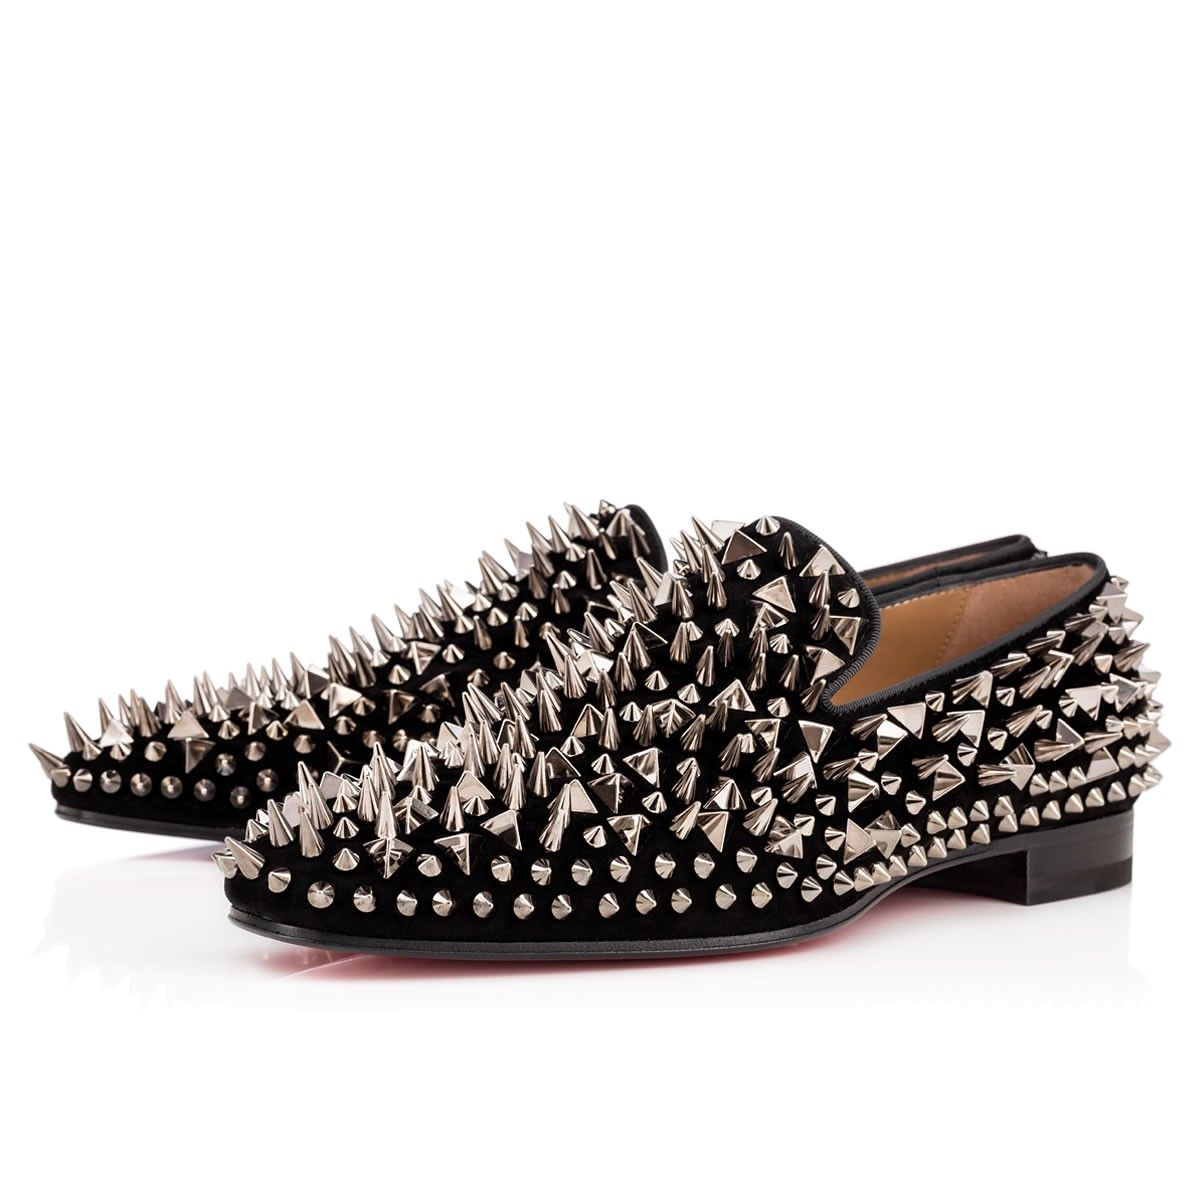 Christian Louboutin Dandy Pik Pik Metallic Loafers sale official outlet huge surprise clearance pictures free shipping sneakernews pwLNhr8i7x